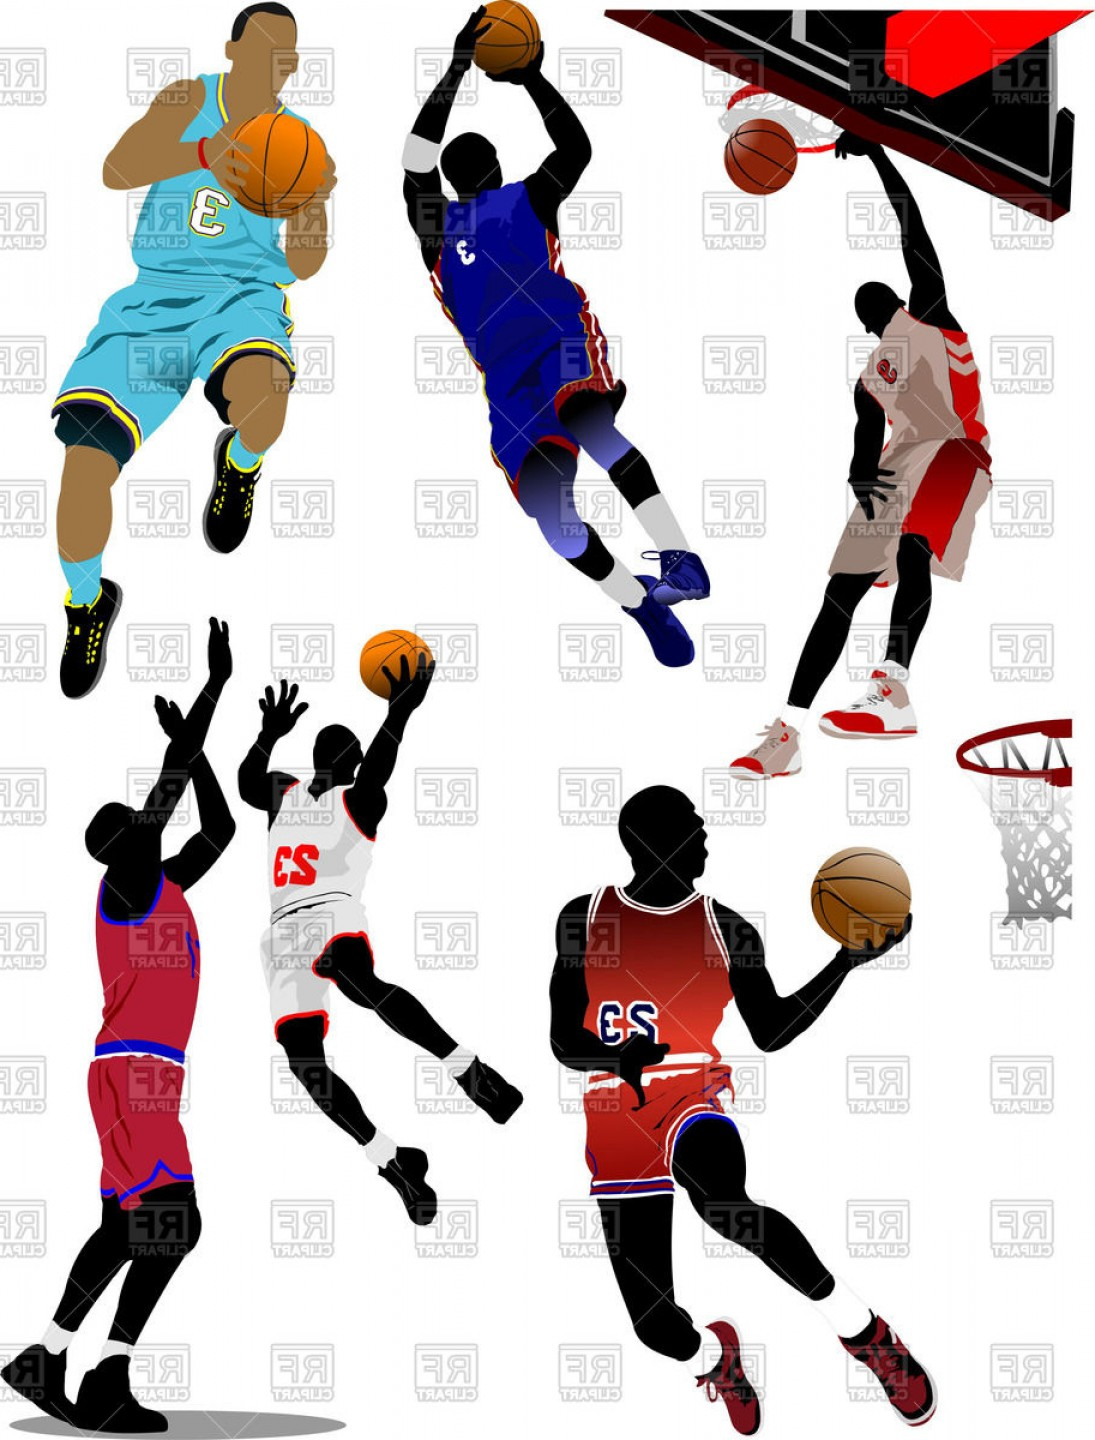 Motion Basketball Vector: Basketball Players With Balls In Motion Colorful Silhouettes Vector Clipart